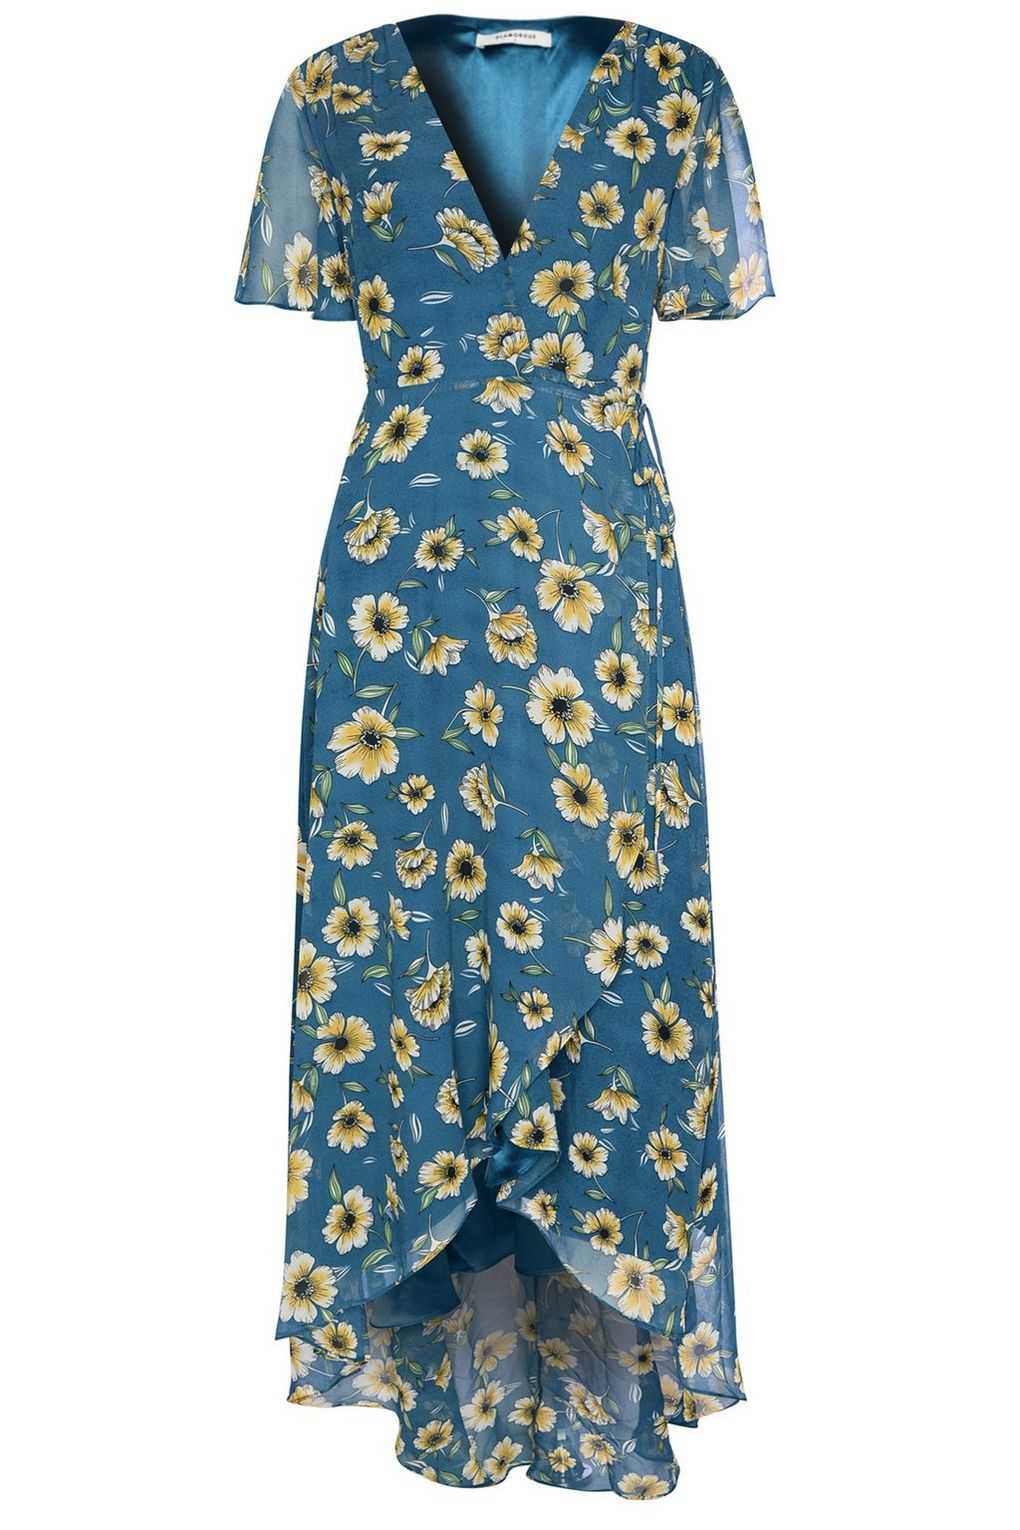 **Floral Maxi Dress by Glamorous - Dresses - Clothing - Topshop